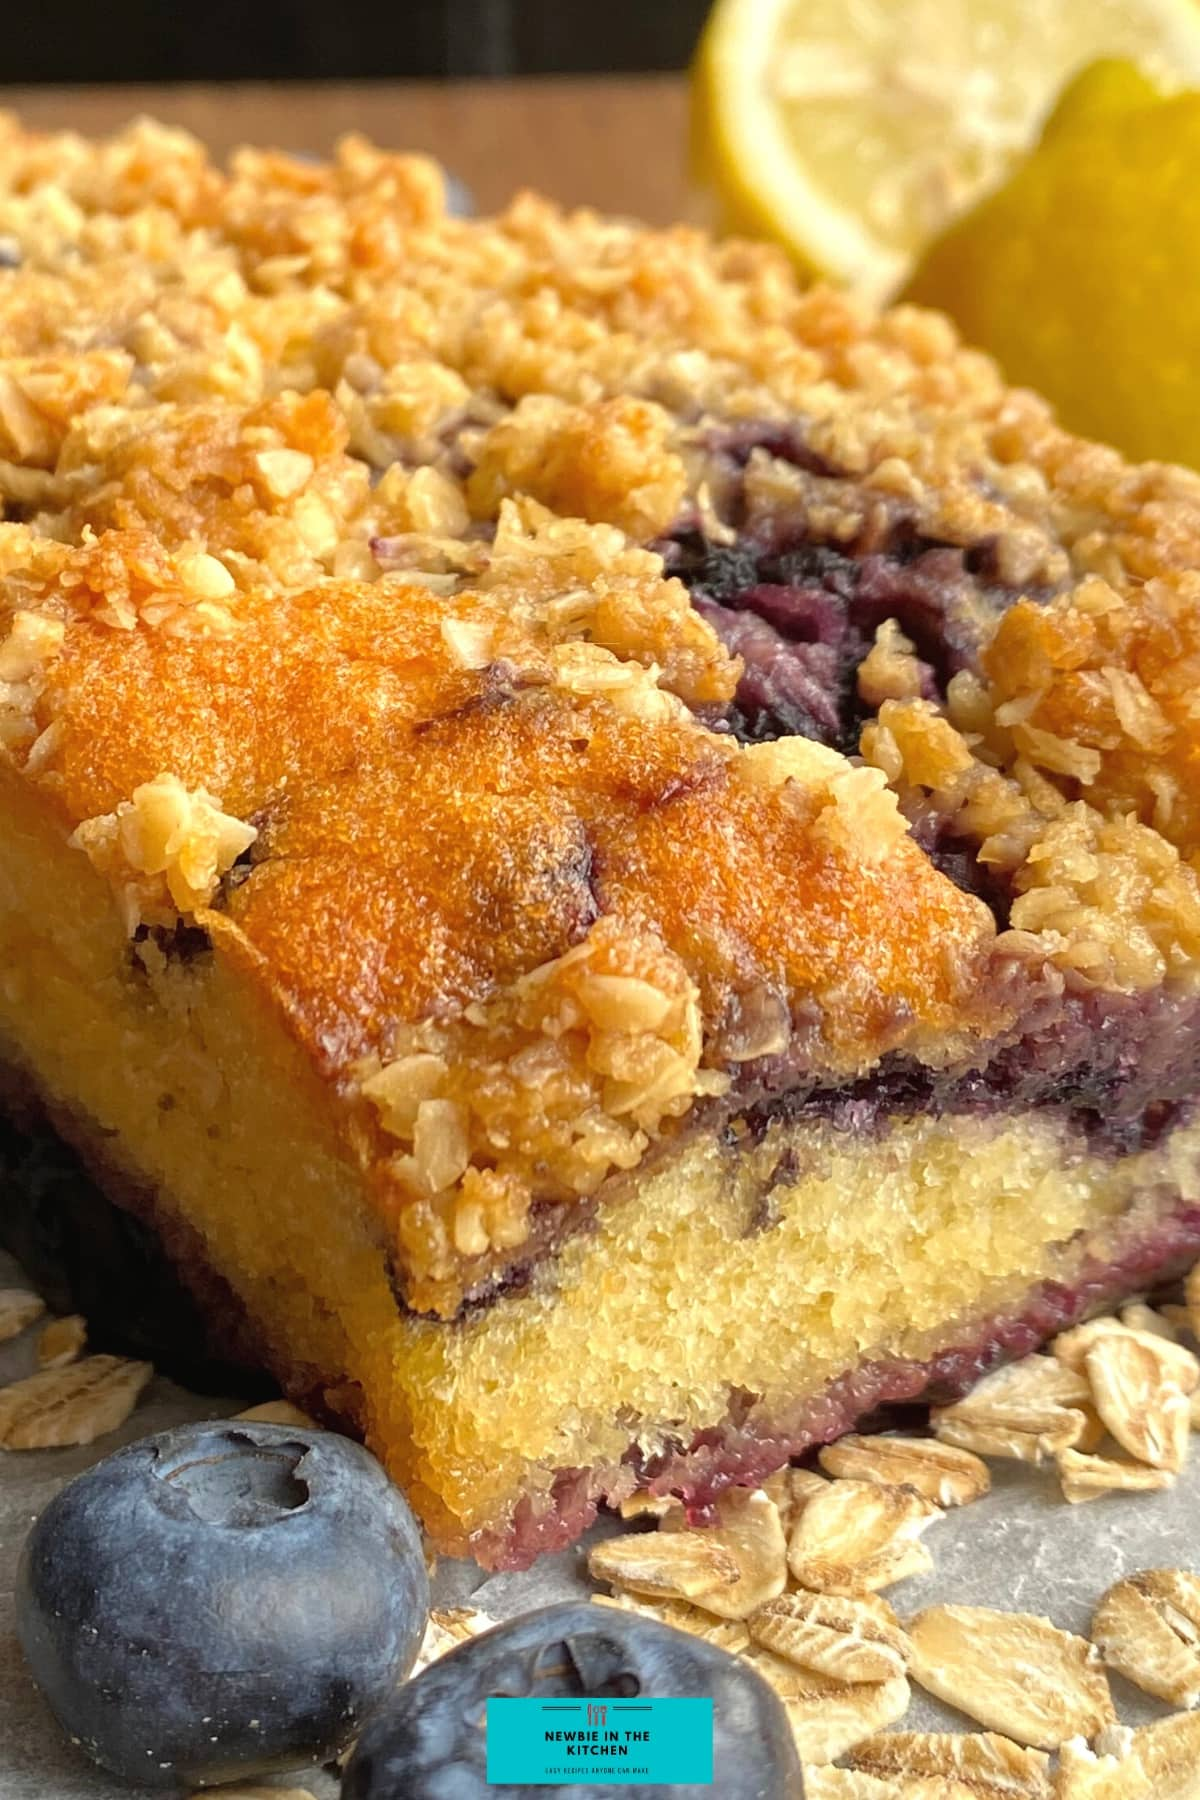 Easy Blueberry and Lemon Crumble Cake. Deliciously soft & moist cake packed with blueberries & a hint of lemon. Topped with a crumble topping. Easiest simple cake recipe ever!